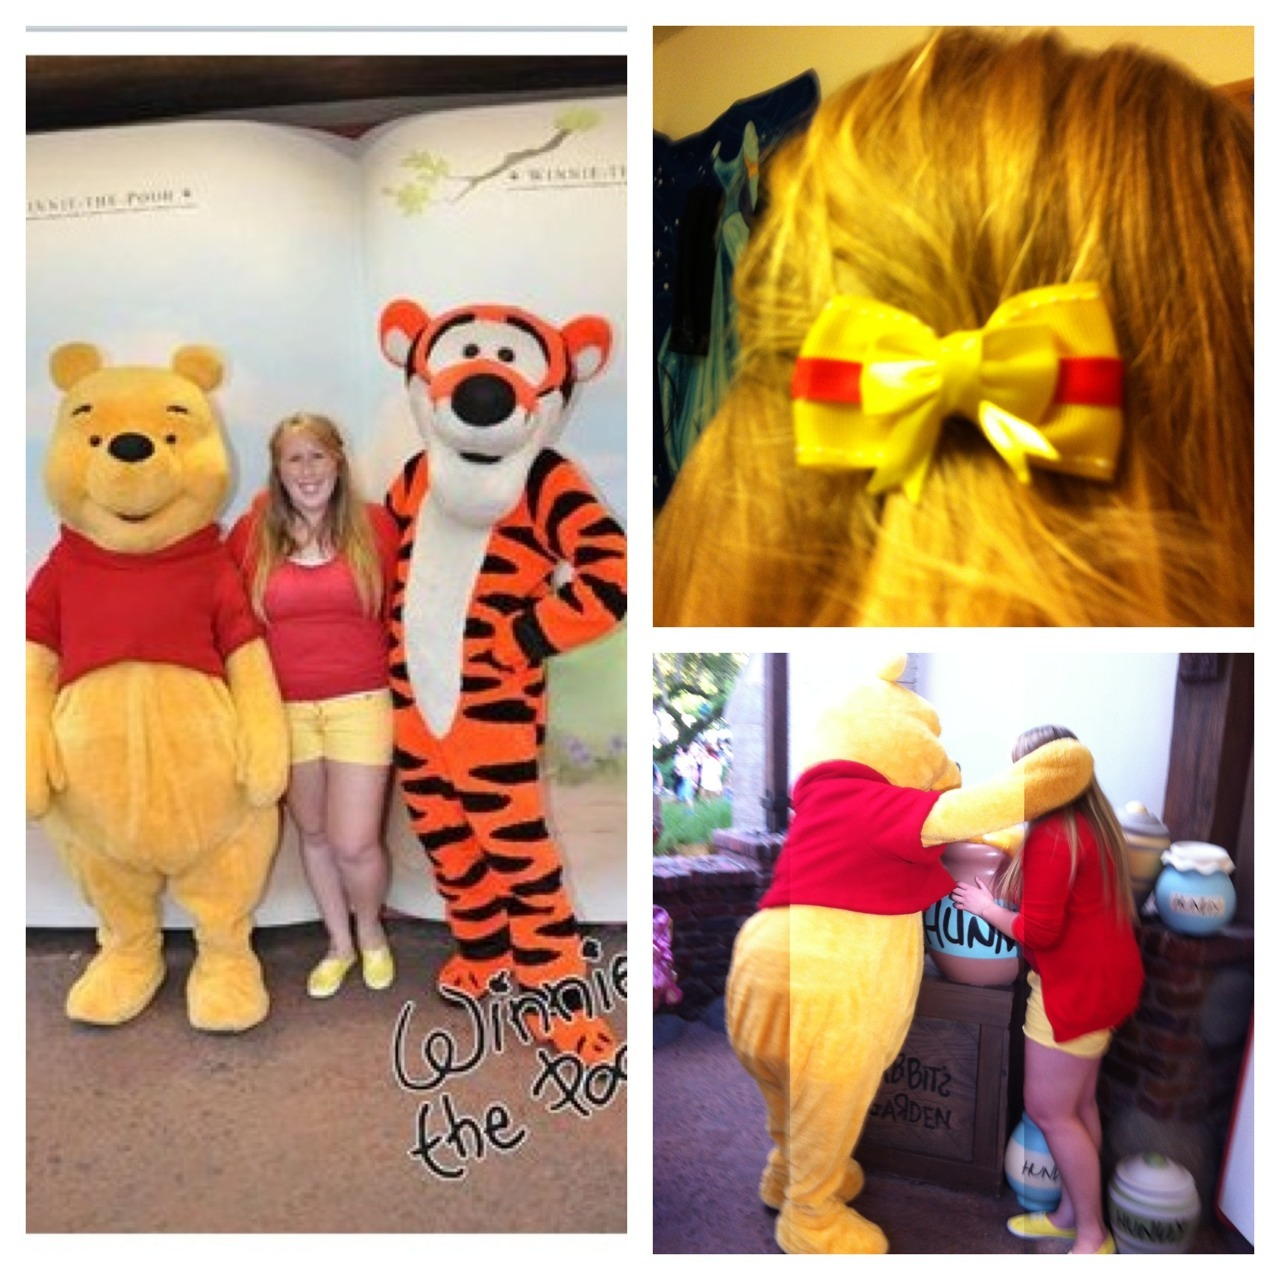 domisdisneybound:  Pooh noticed that we matched and got so excited. He also shared his honey with me  I love this! <3